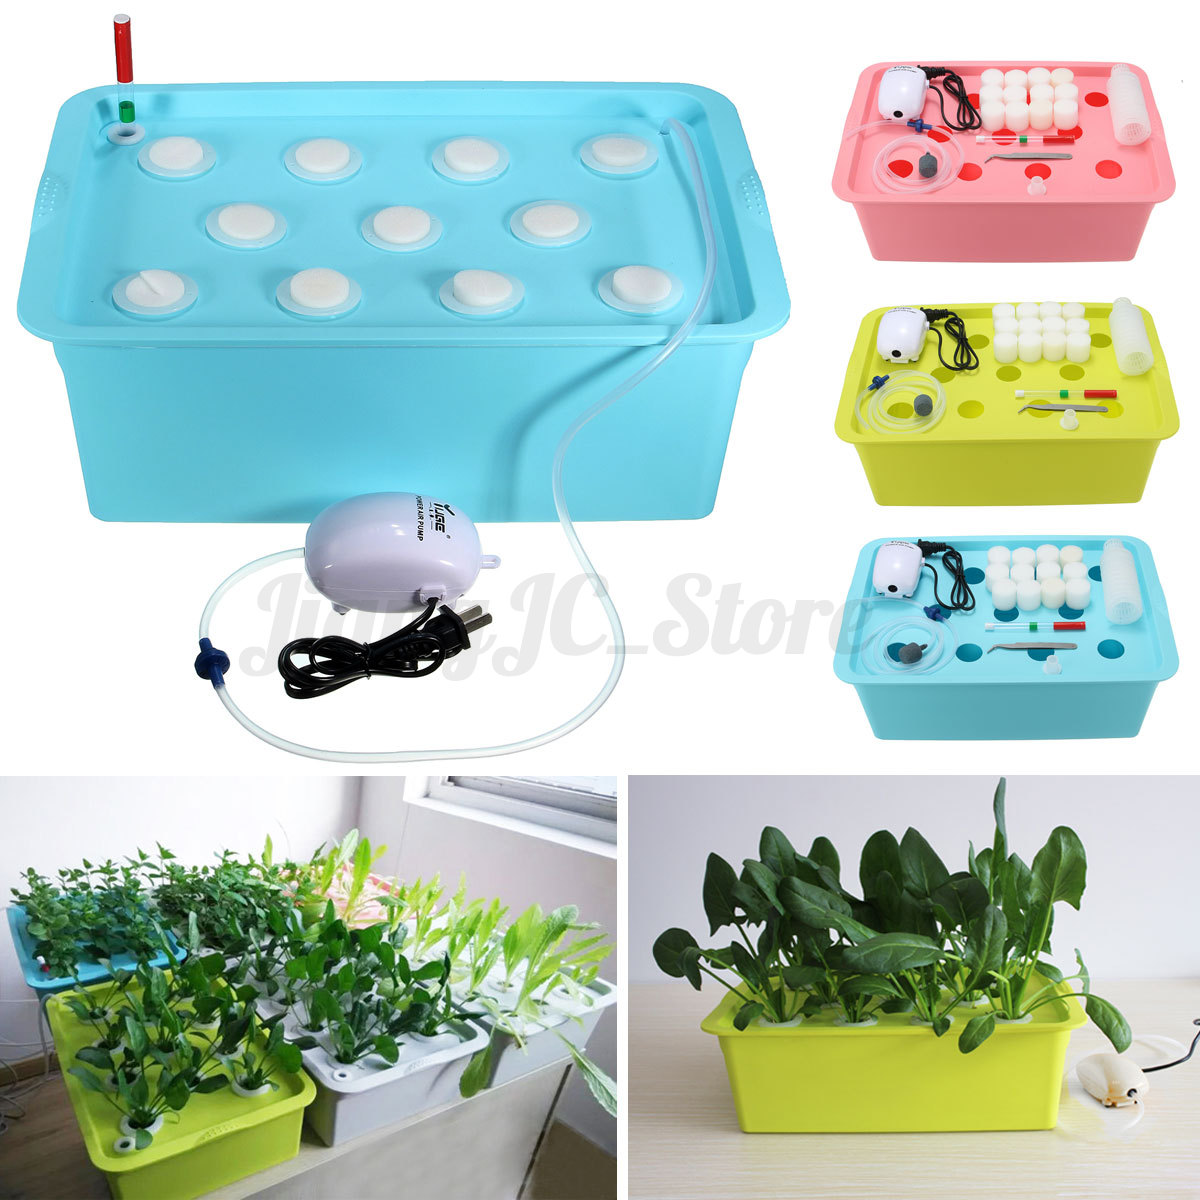 11 plant site watering hydroponic system grow kit culture. Black Bedroom Furniture Sets. Home Design Ideas